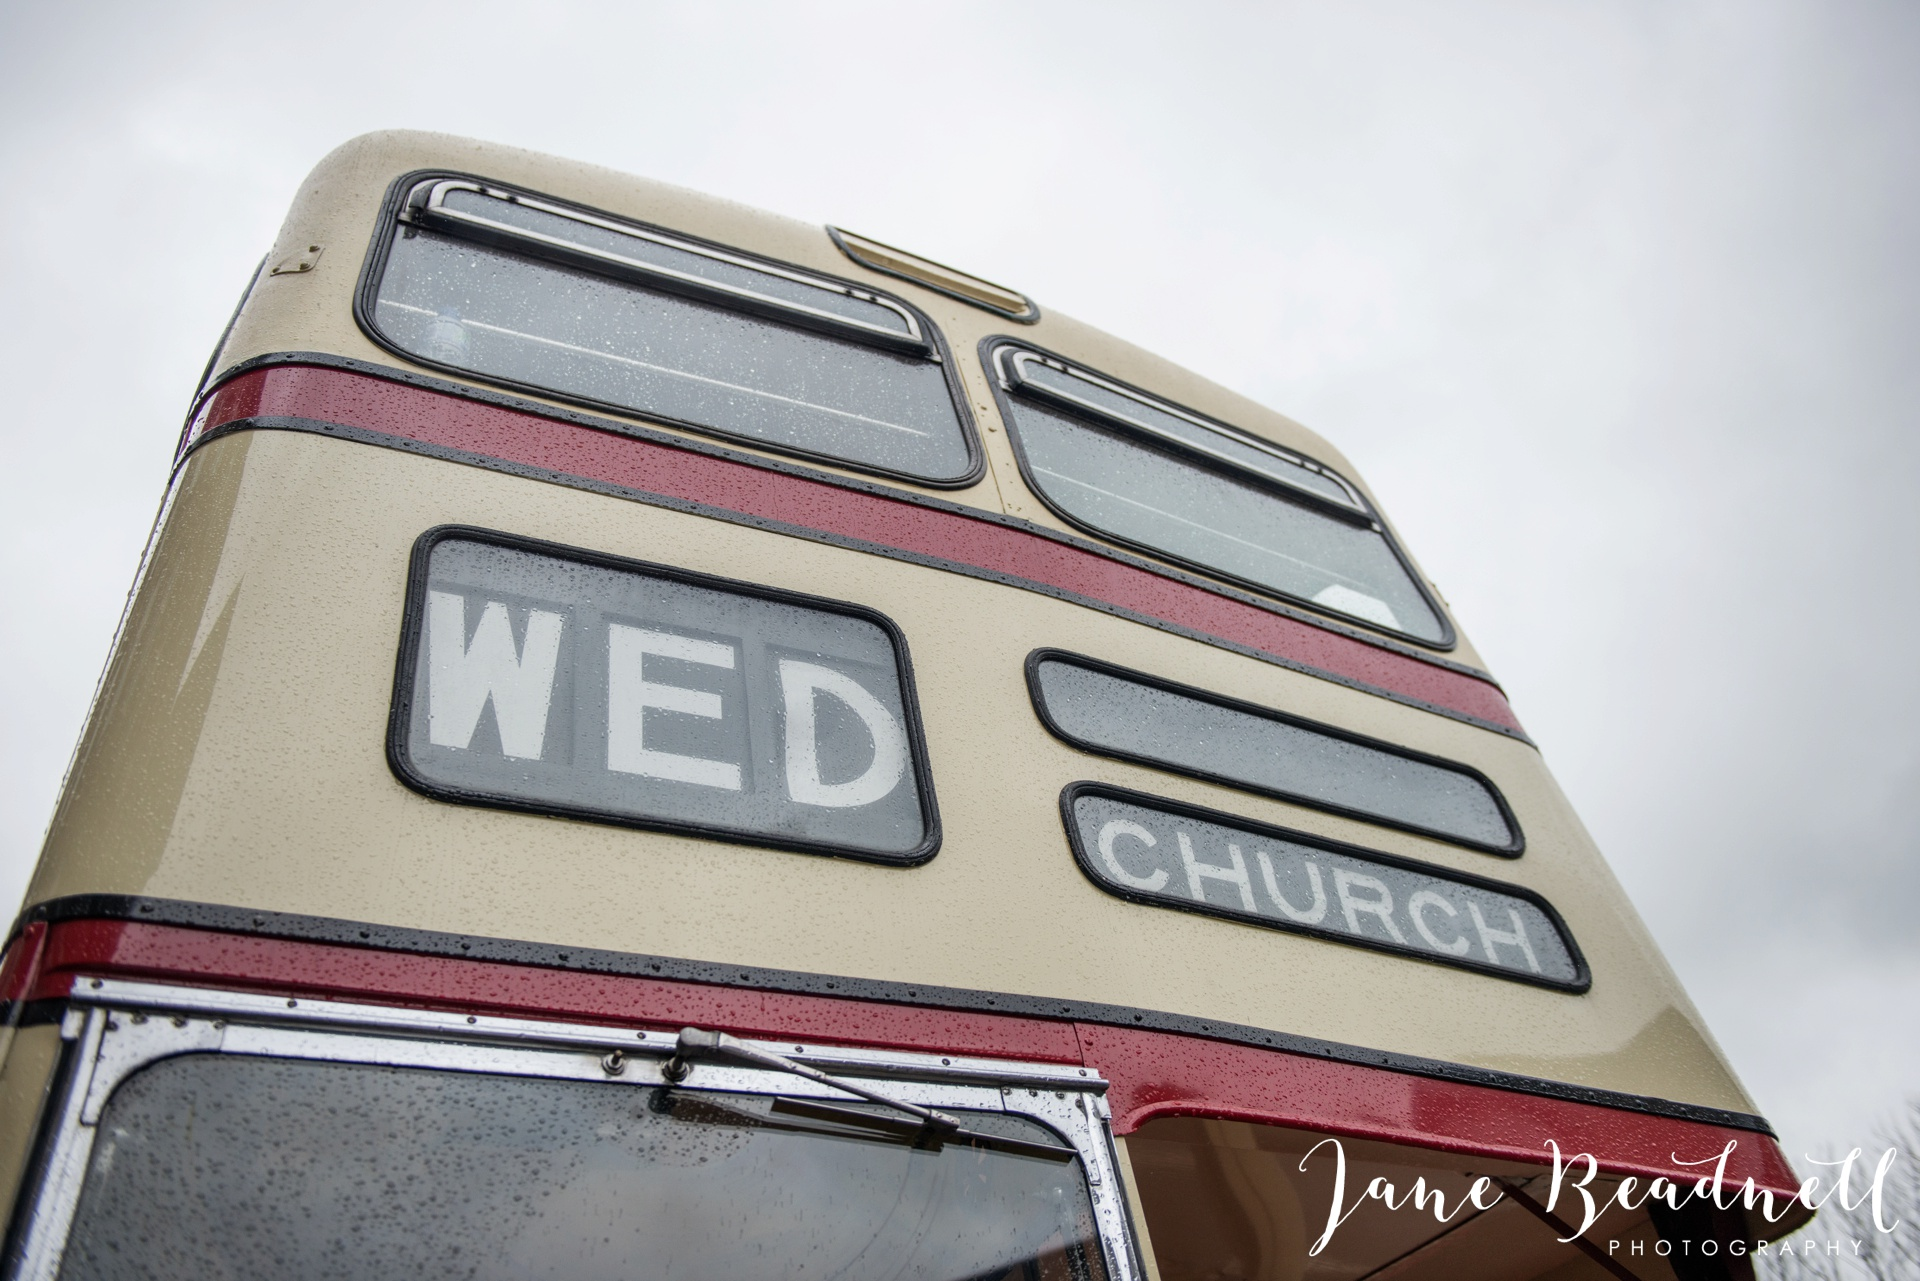 Cracoe Village Hall Wedding Photography by Jane Beadnell Photography fine art wedding photographer Yorkshire_0019